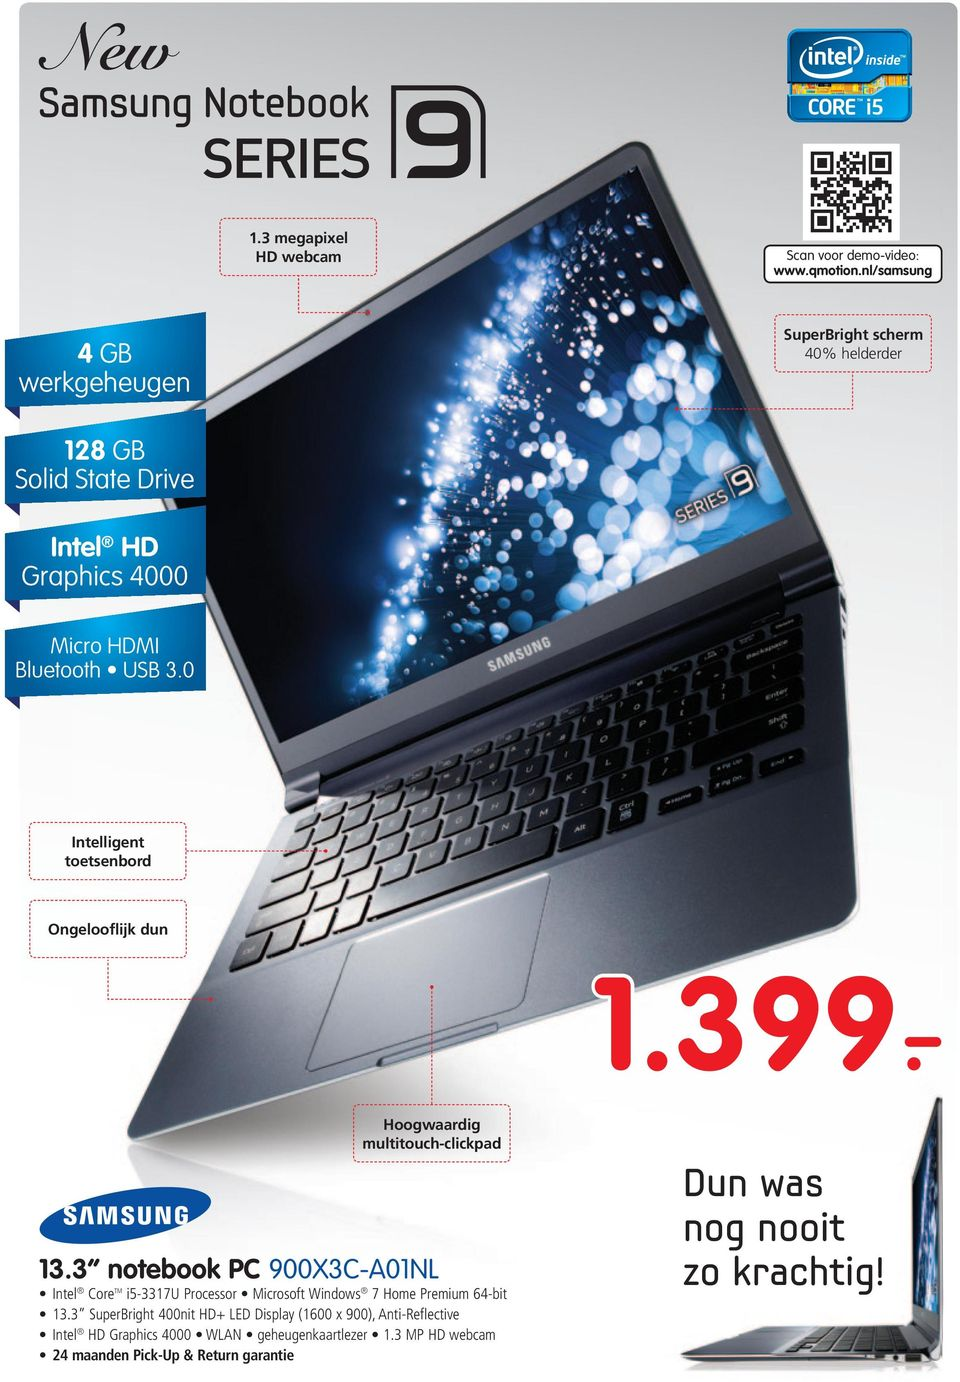 3 notebook PC 900X3C-A01NL Intel Core TM i5-3317u Processor Microsoft Windows 7 Home Premium 64-bit 13.